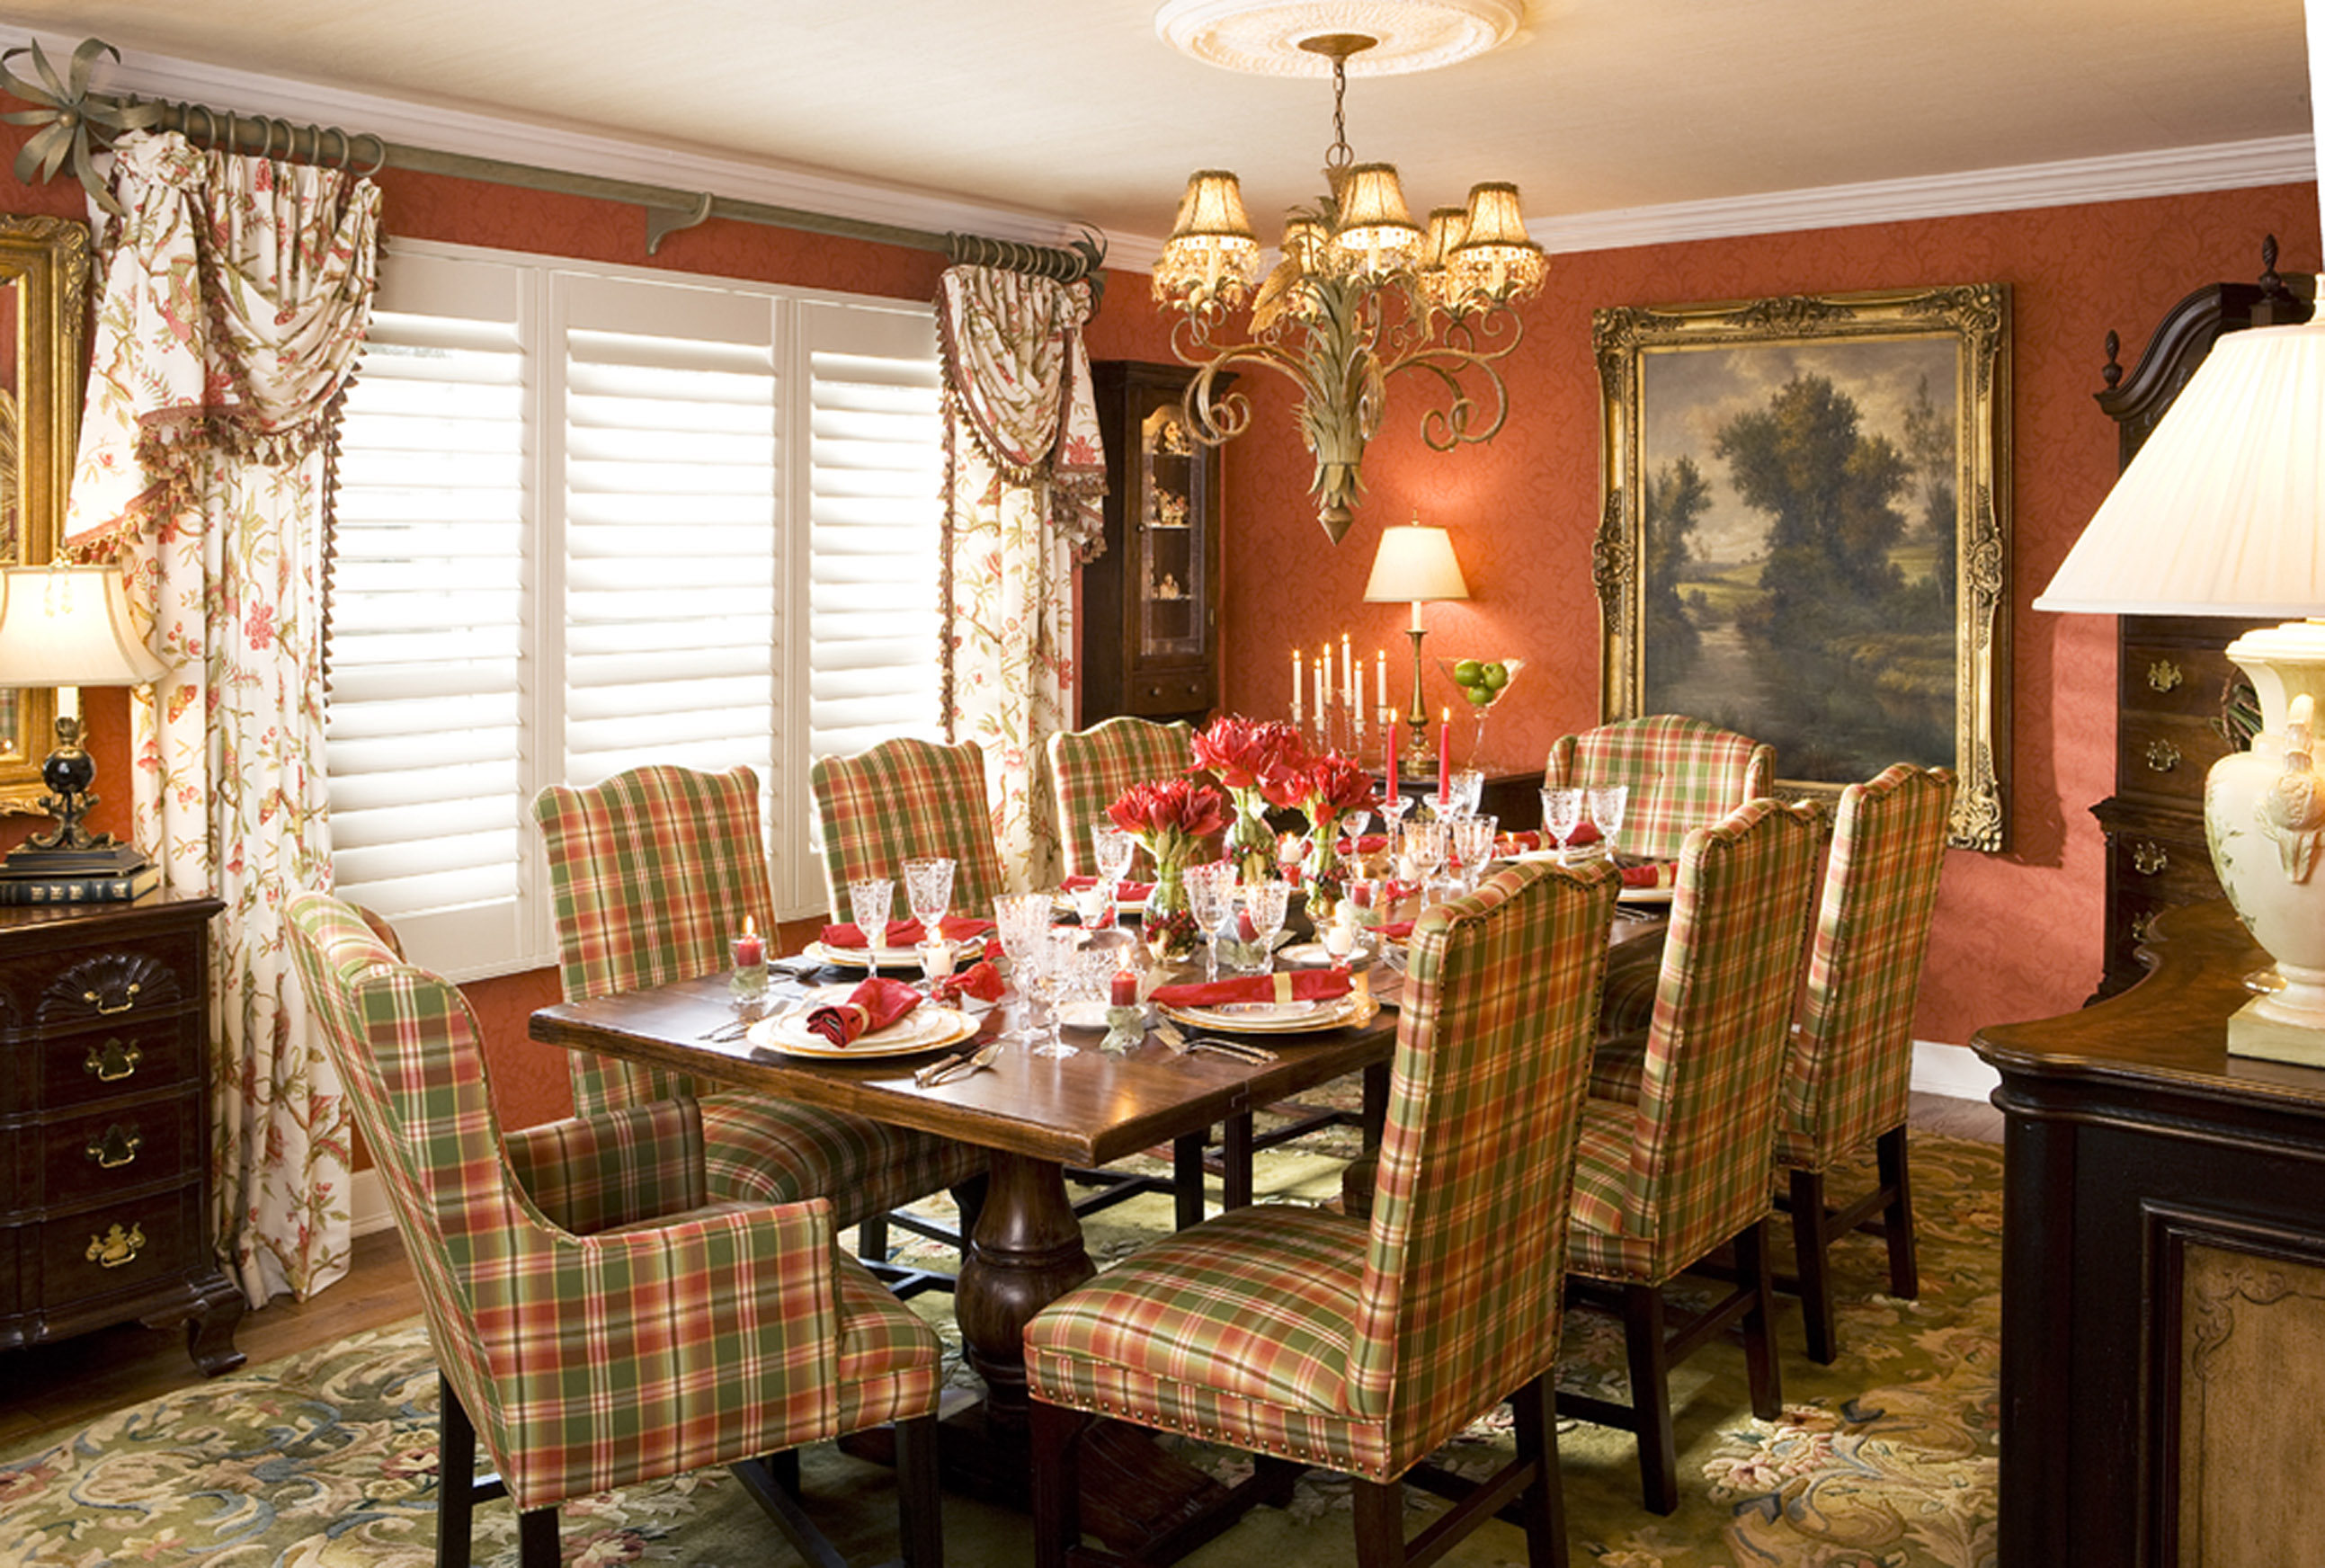 dining in style! - decorating den interiors